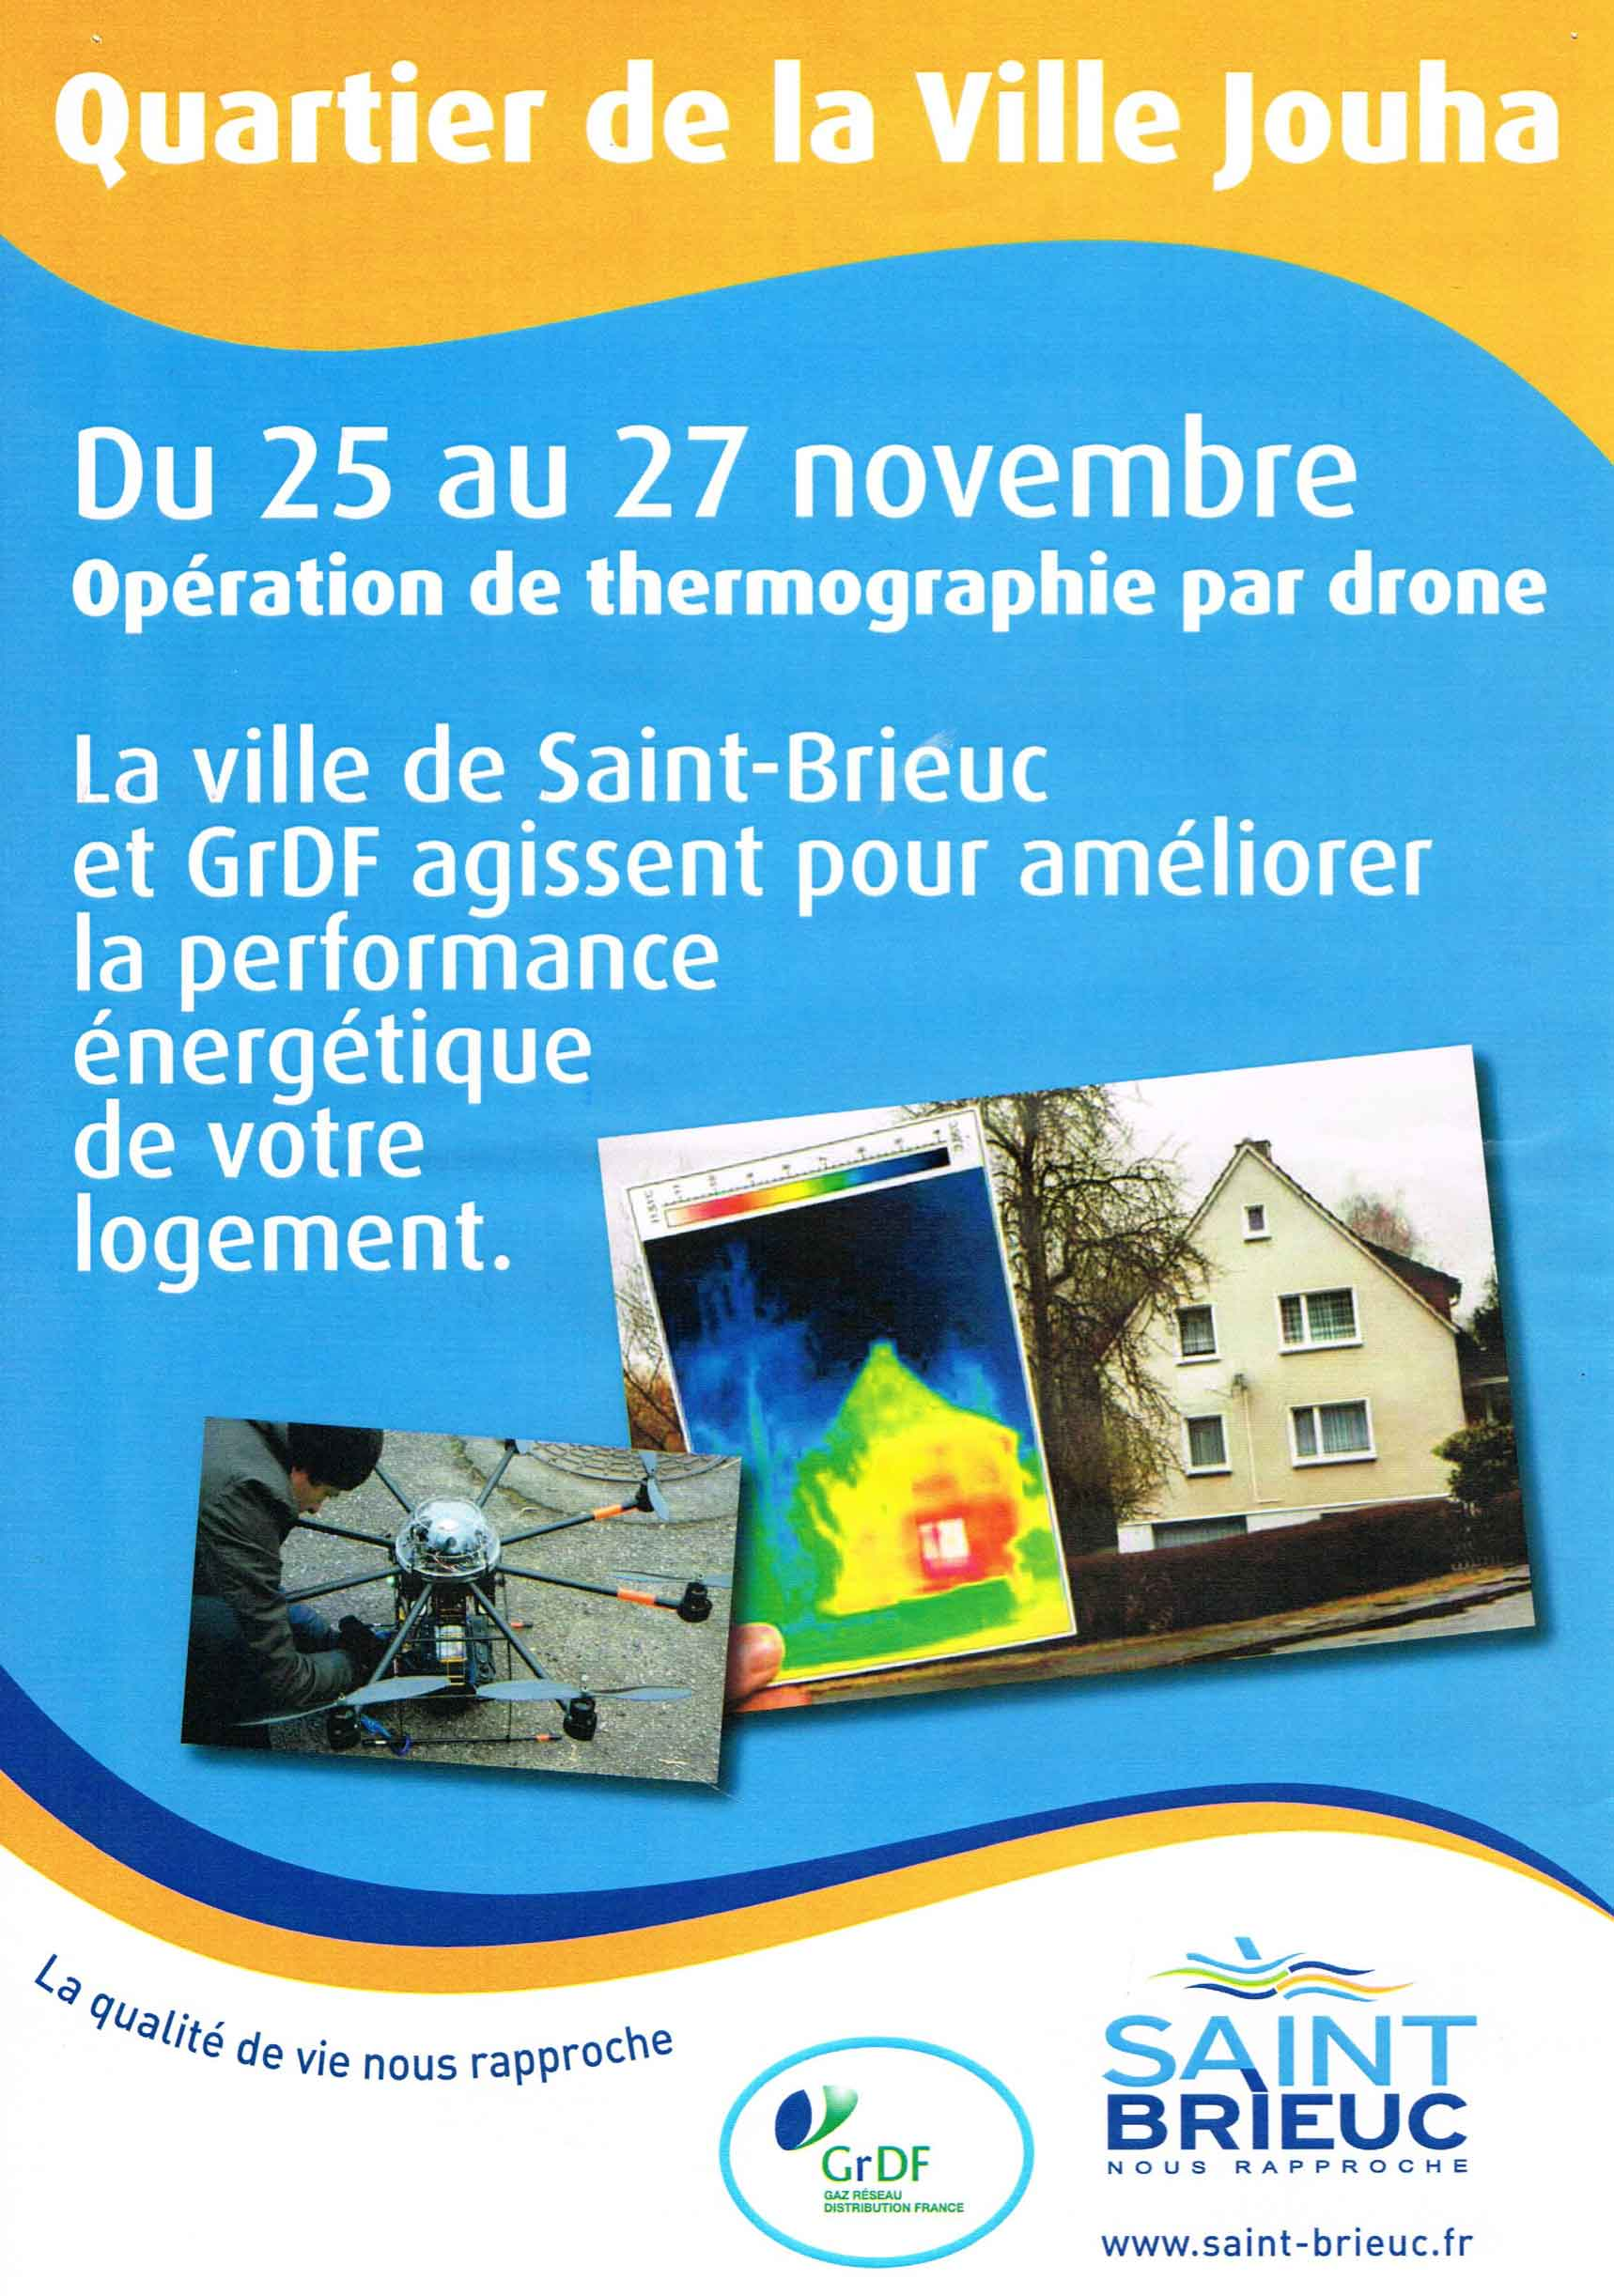 presse drone jouha Thermographie